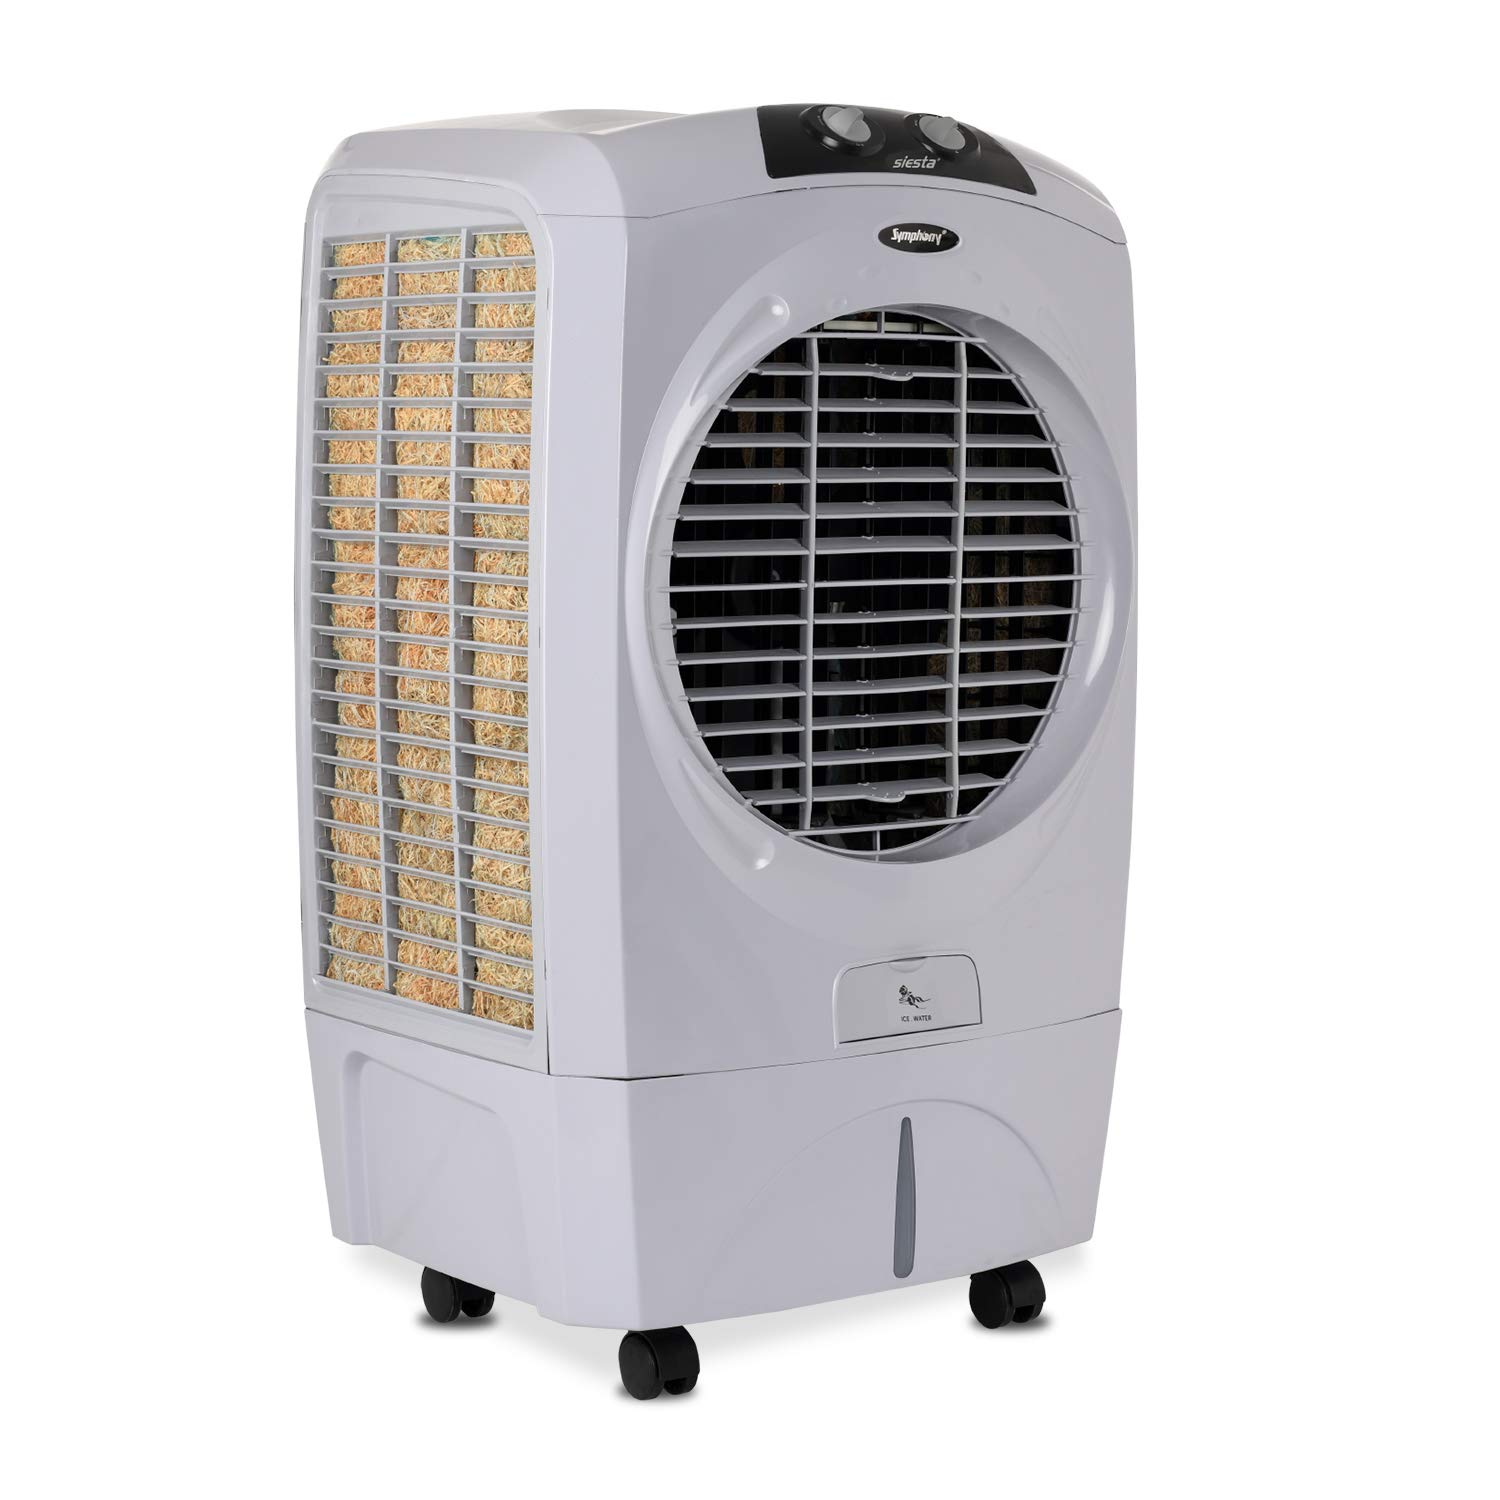 Symphony SIESTA Desert Air Cooler 45-litres With Cool Flow Dispenser, Powerful Fan, Specially Designed Grill For Better Air Flow & Low Power Consumpti